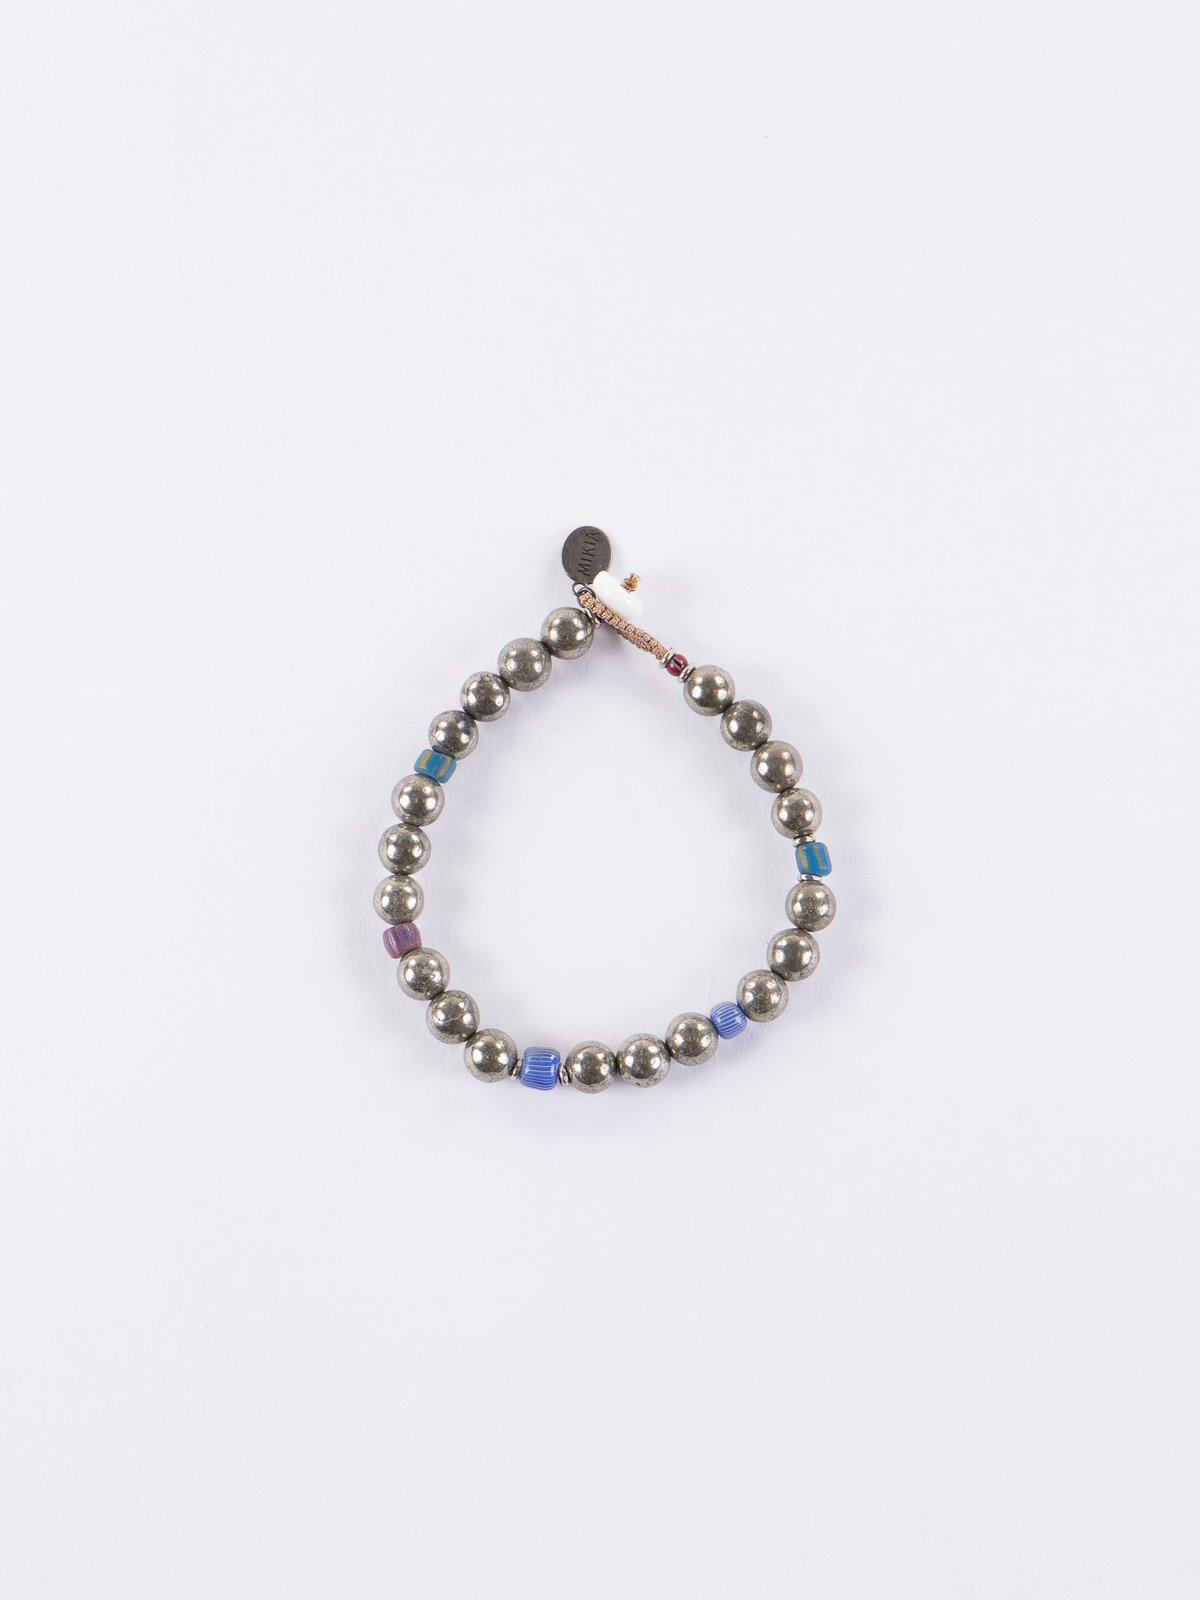 Golden Pyrite 8mm Bracelet - Image 1